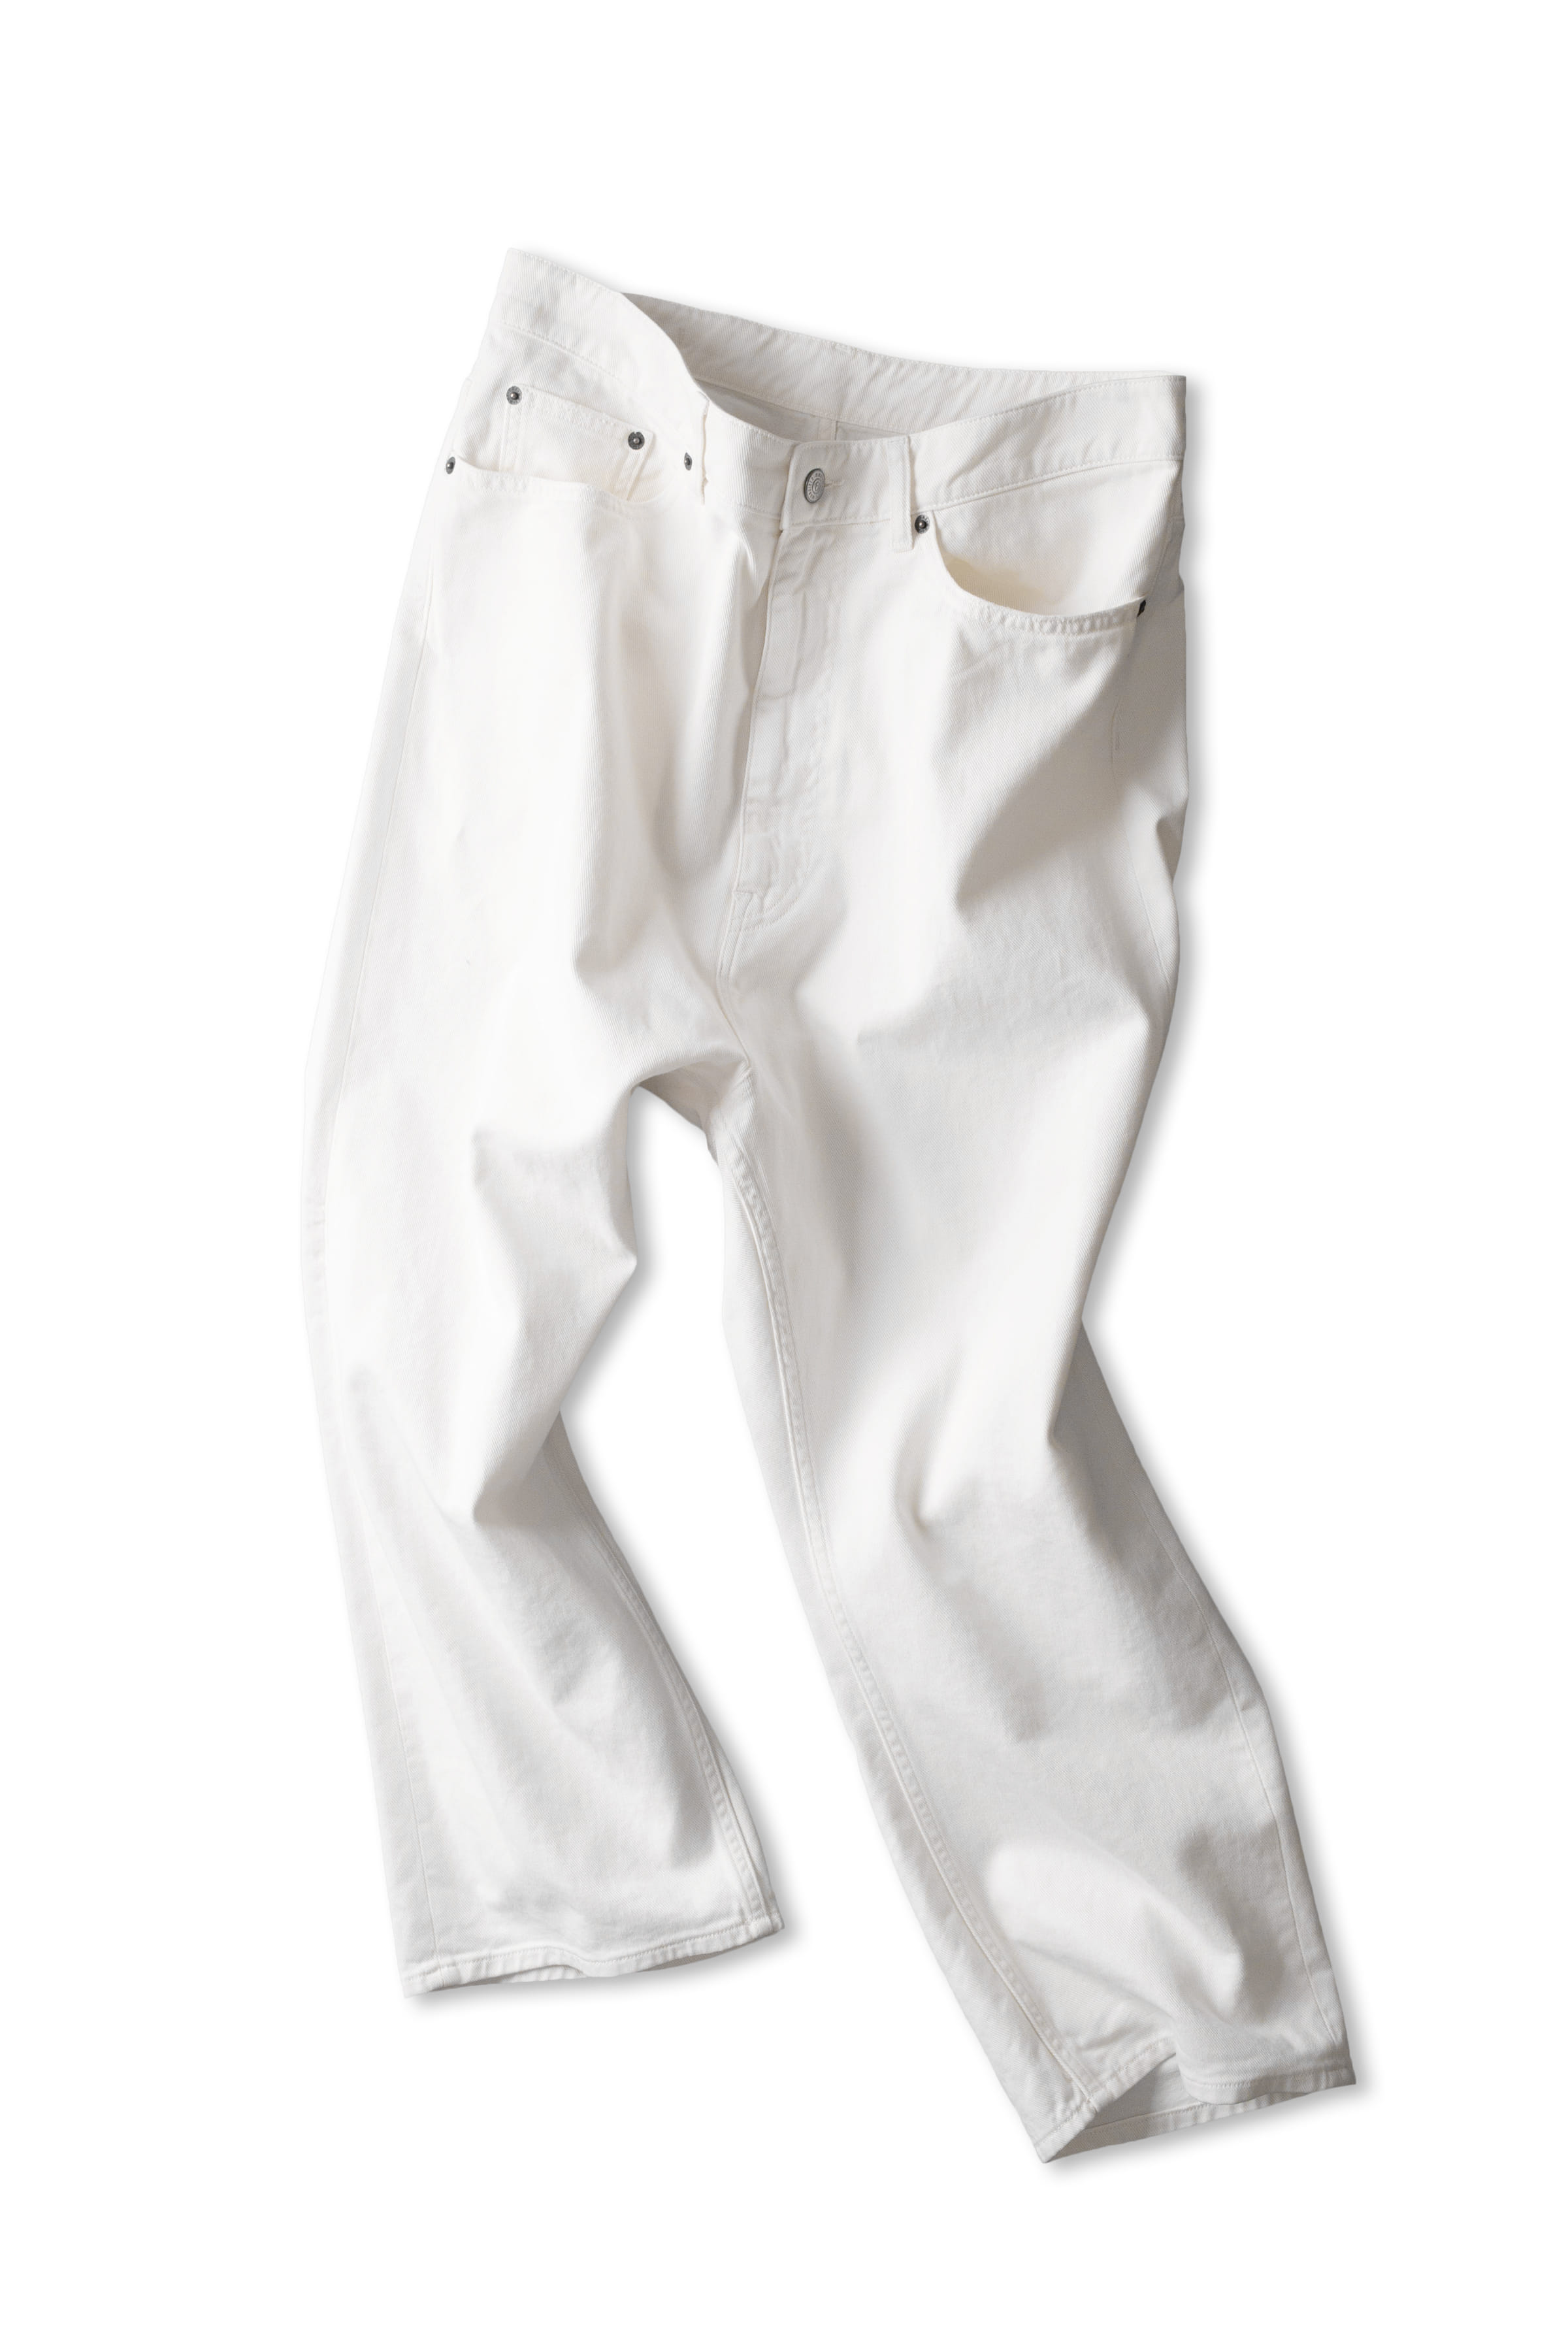 MM6 Maison Margiela : Pants 5 Pocket (White)